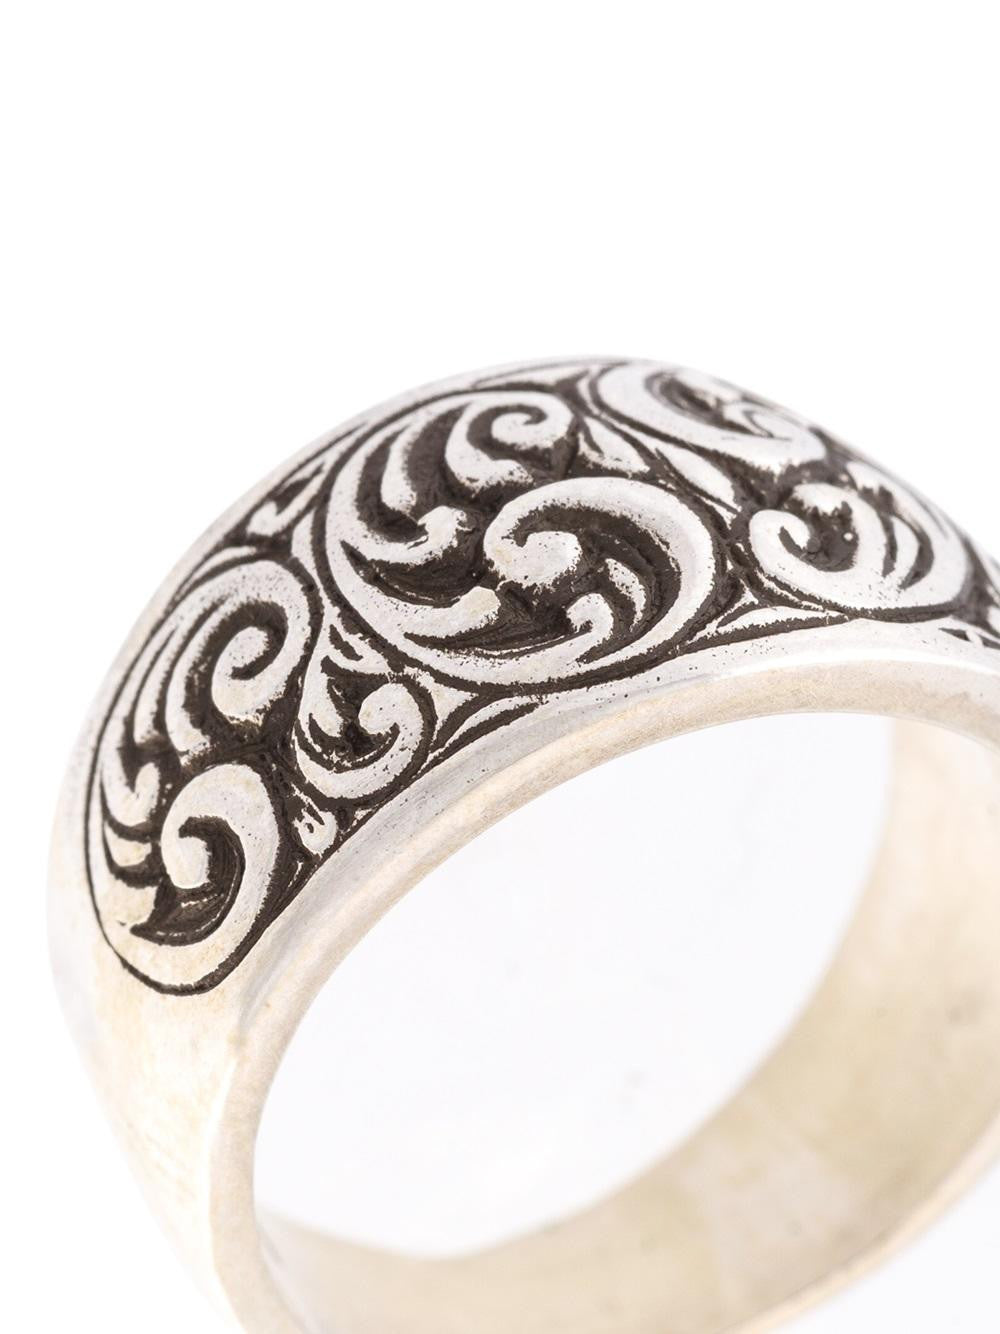 HENSON  Engraved Husk Ring - 3